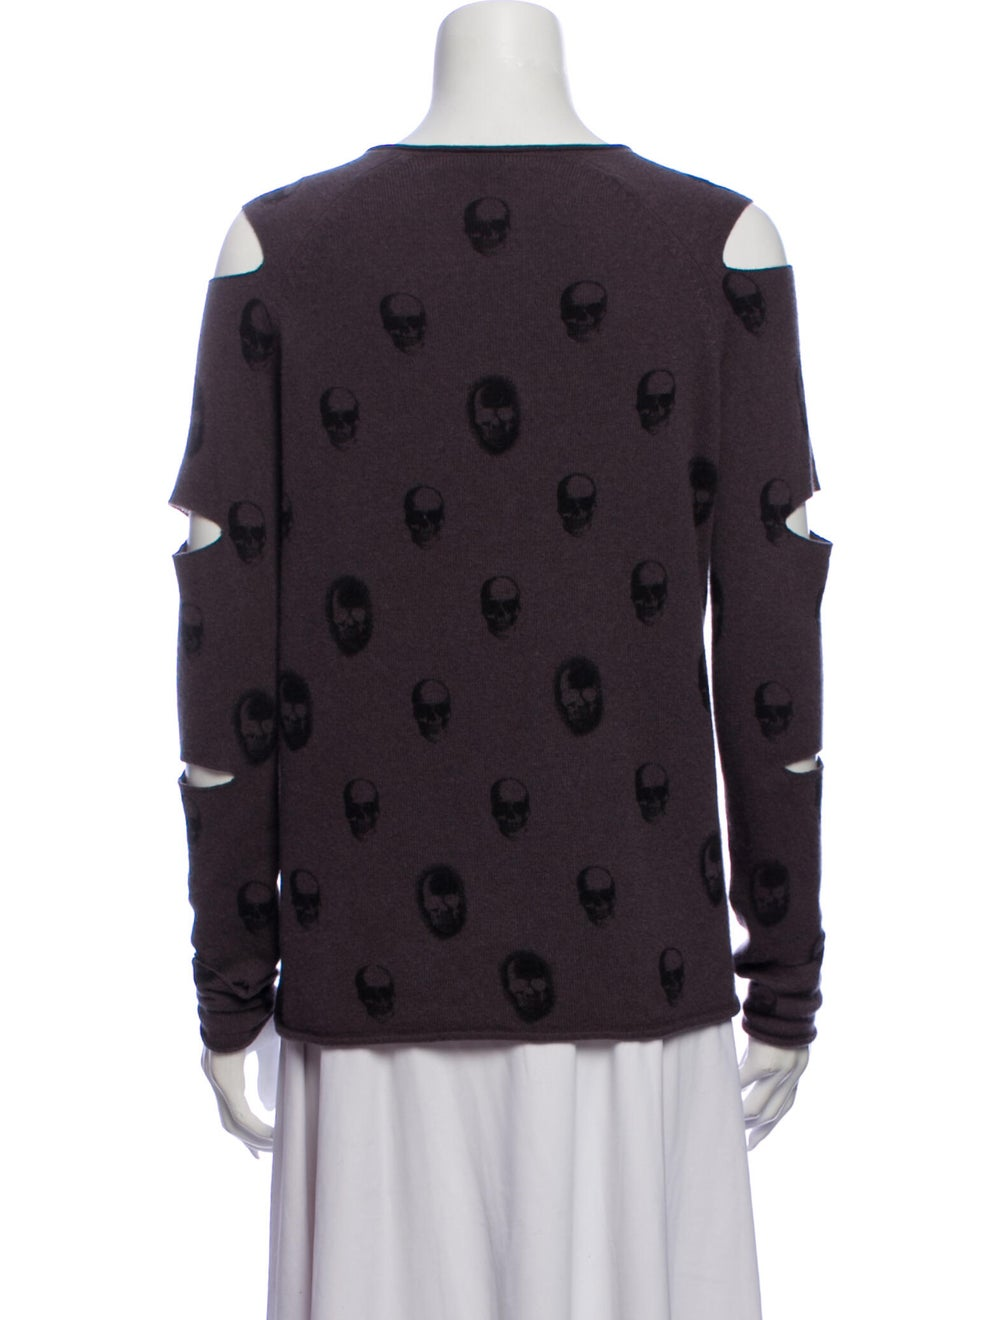 Skull Cashmere Cashmere Patterned Sweater Purple - image 3